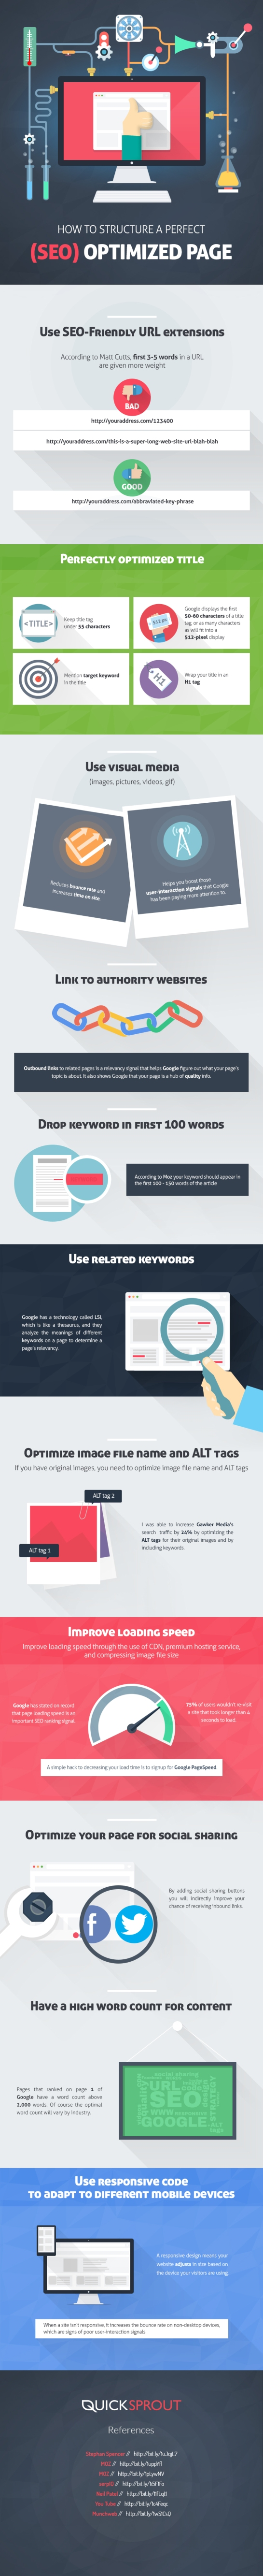 Structure d'une page SEO-friendly - Infographie